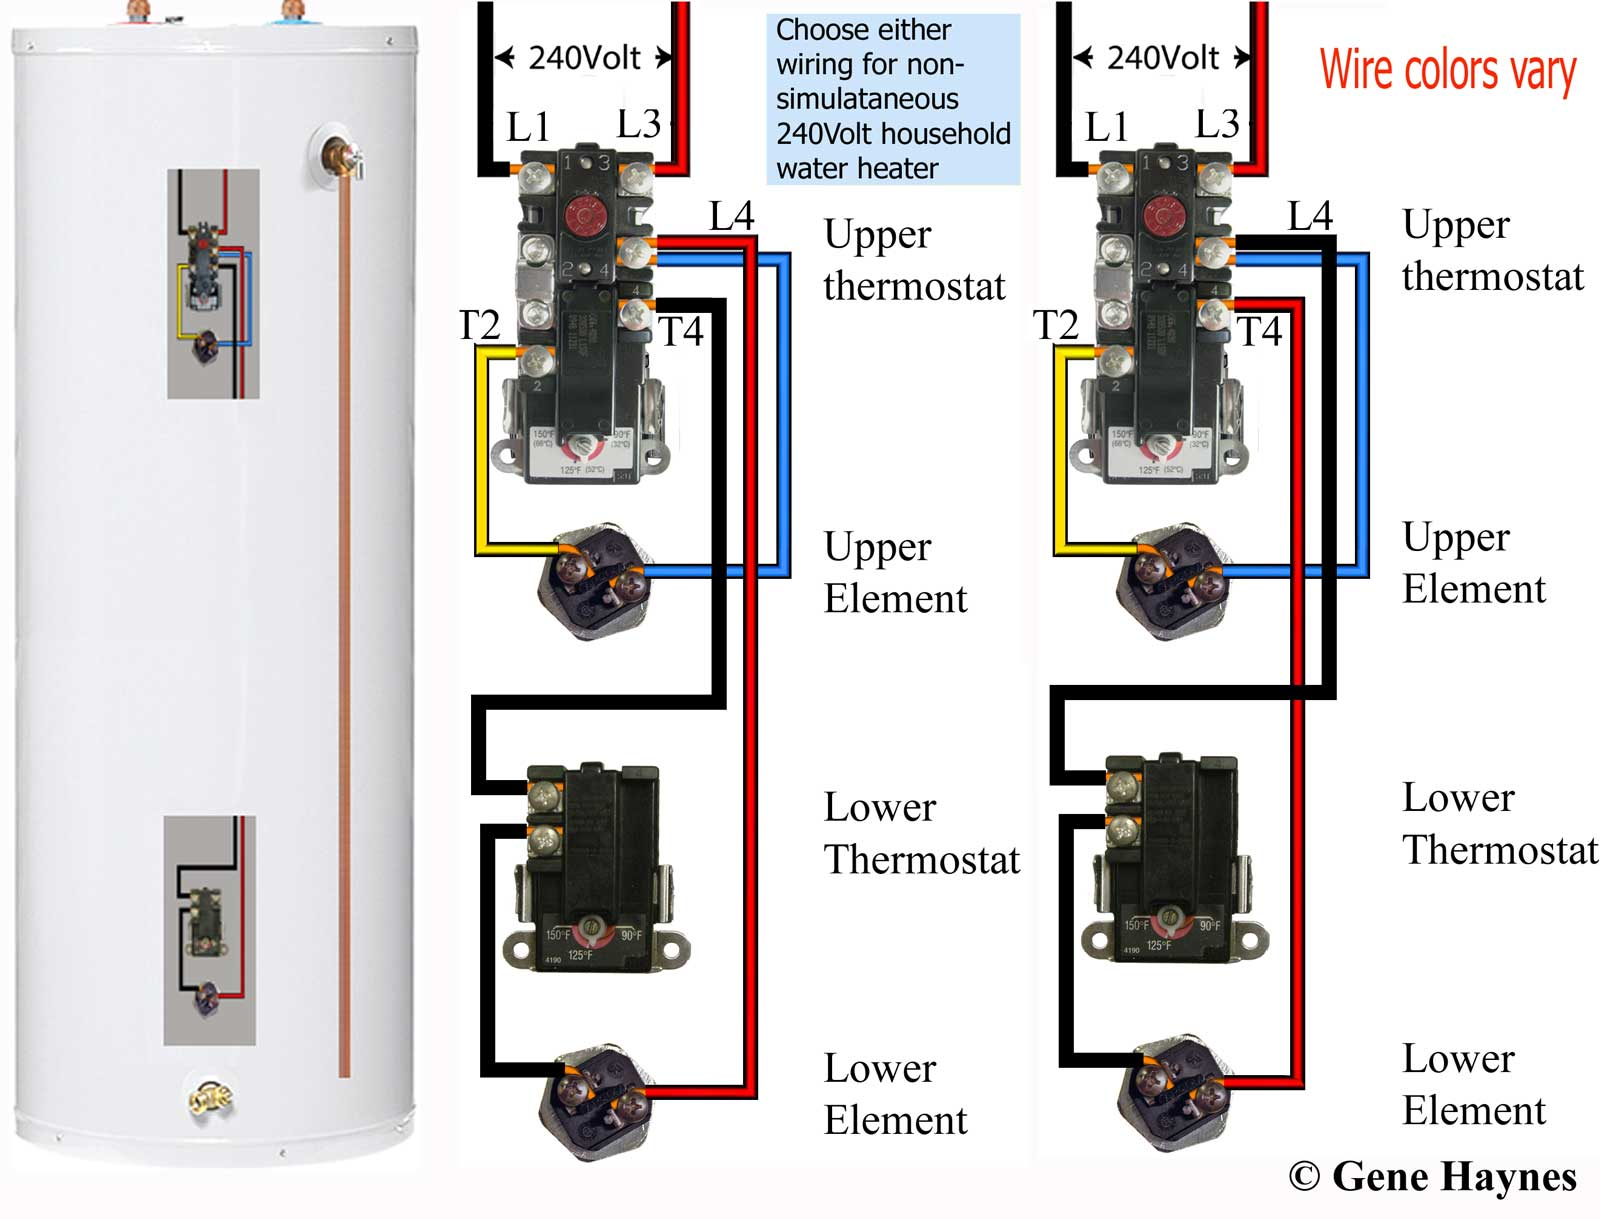 How to wire thermostats · How water heater thermostats work